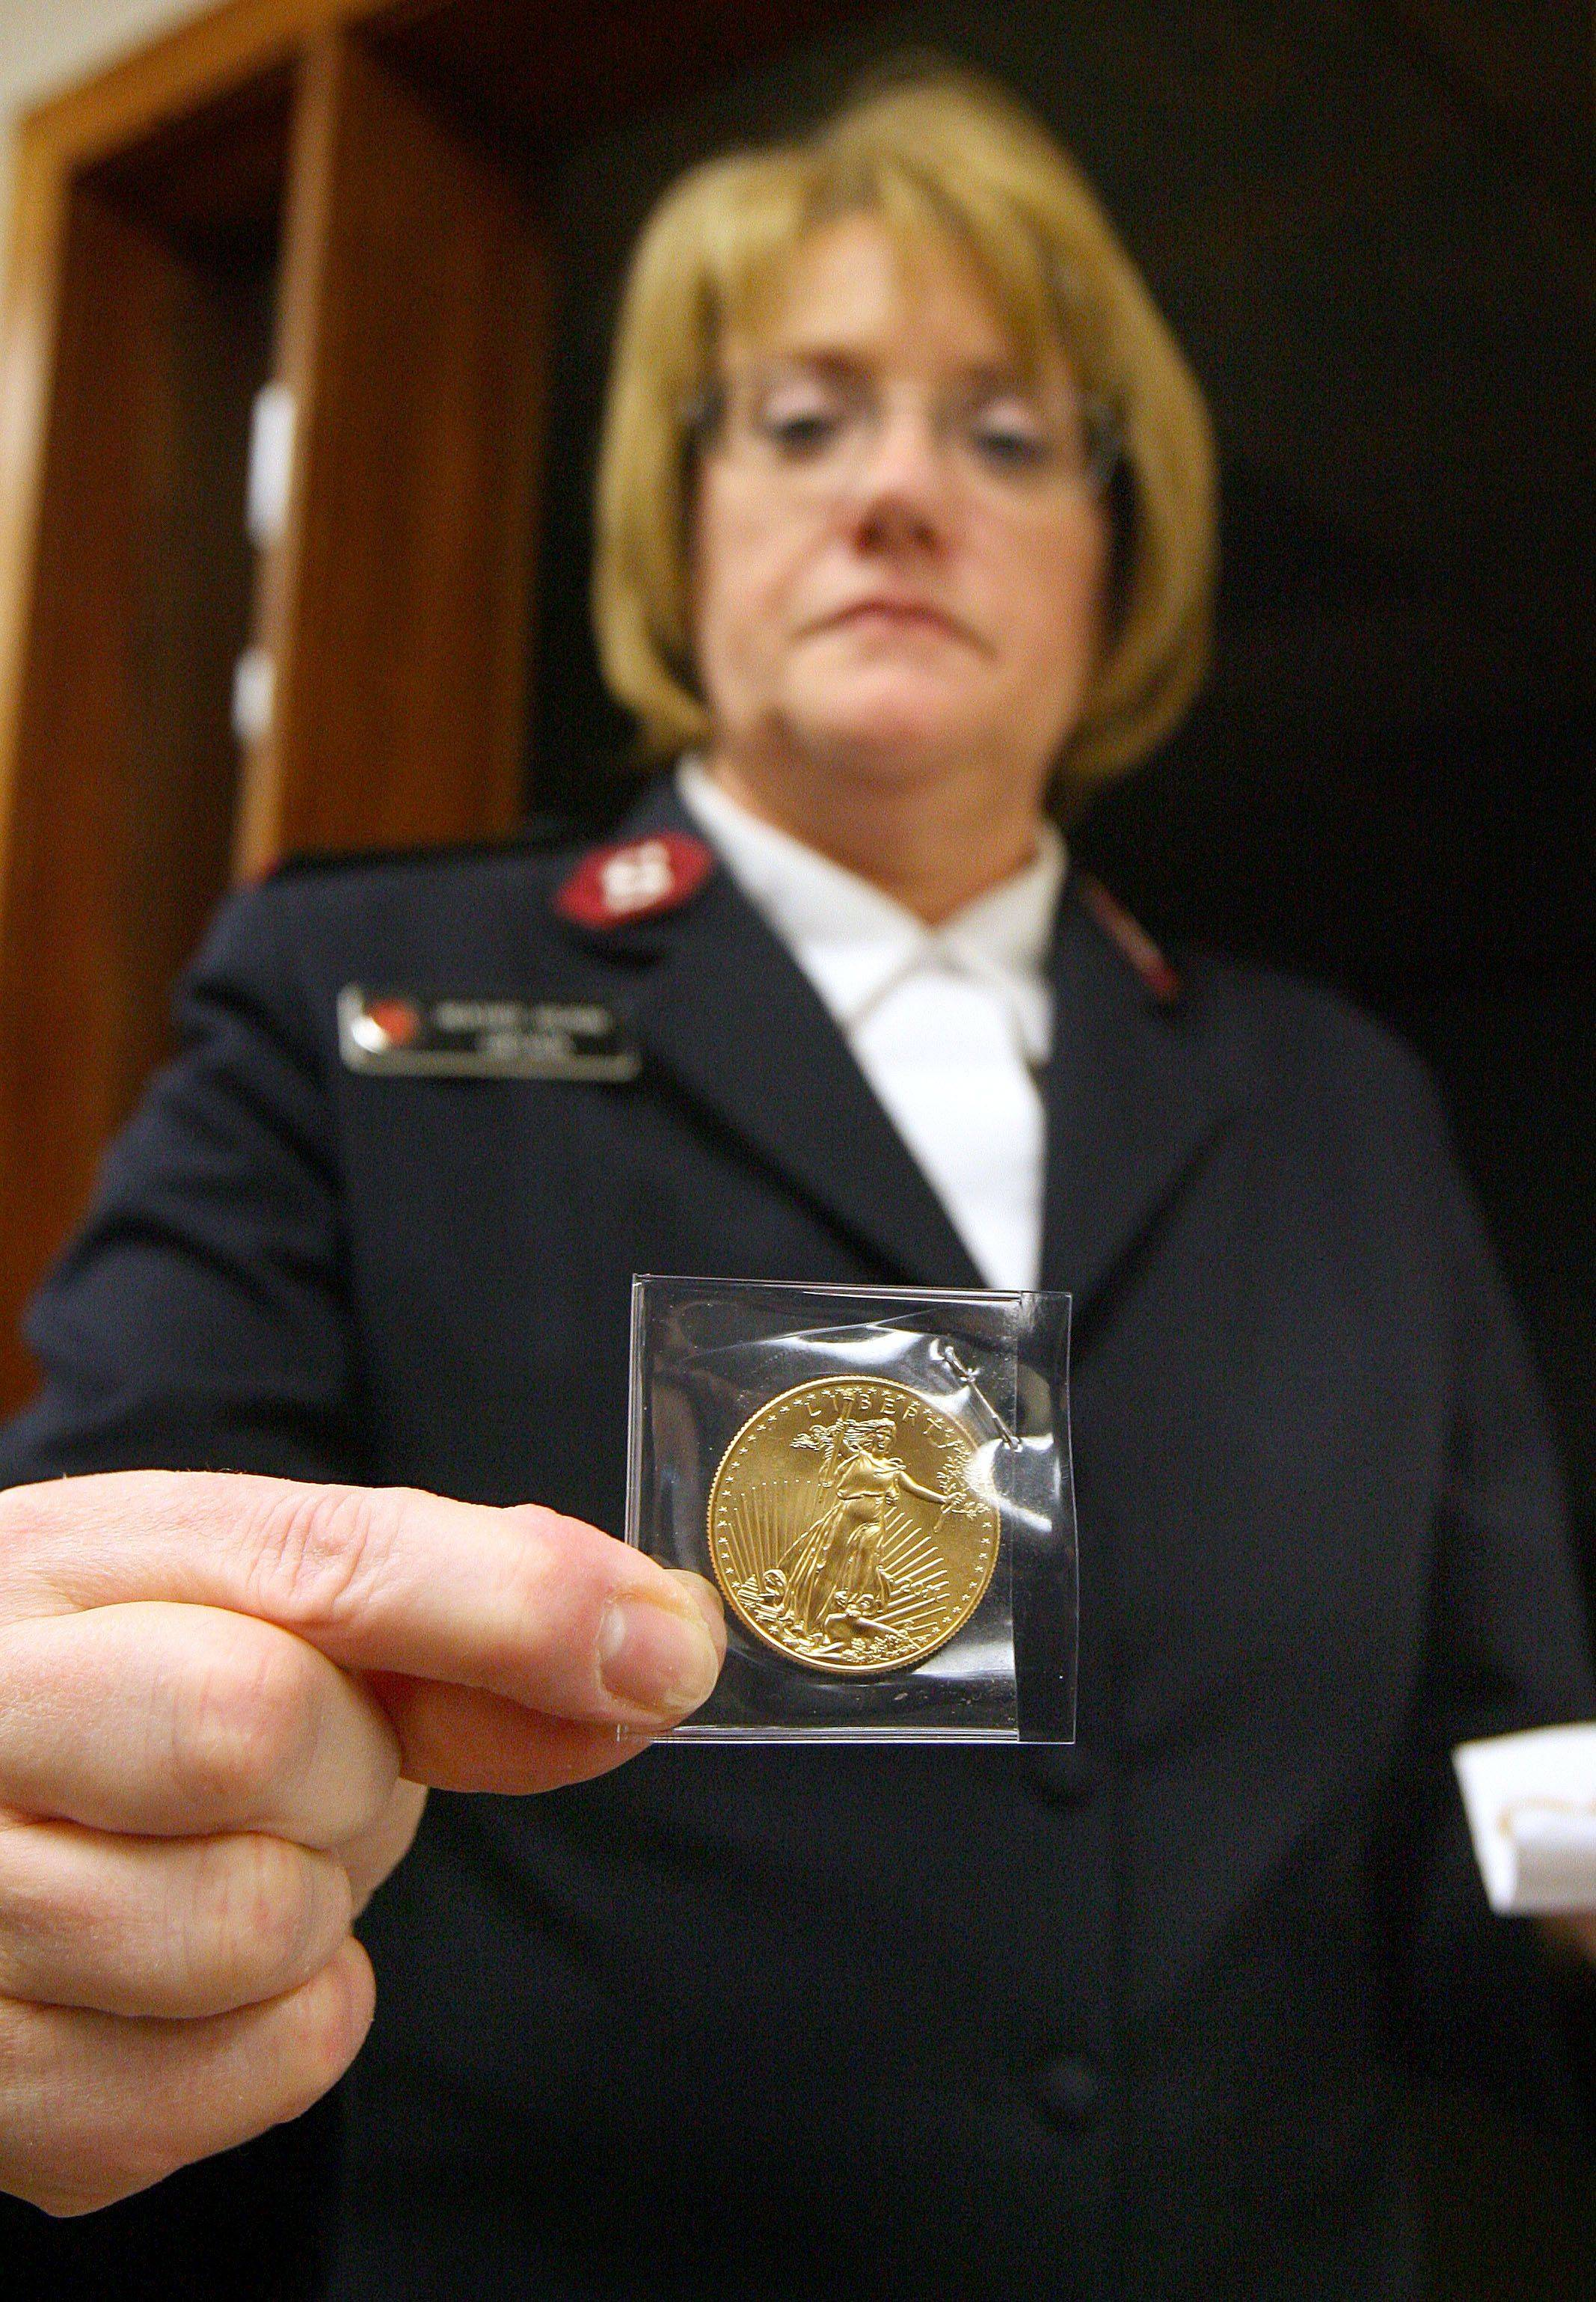 Salvation Army Waukegan Corps Capt. Heather Holman holds one of the 17 gold coins found in various Lake County kettles this winter. The coins have an estimated value of around $7,000.